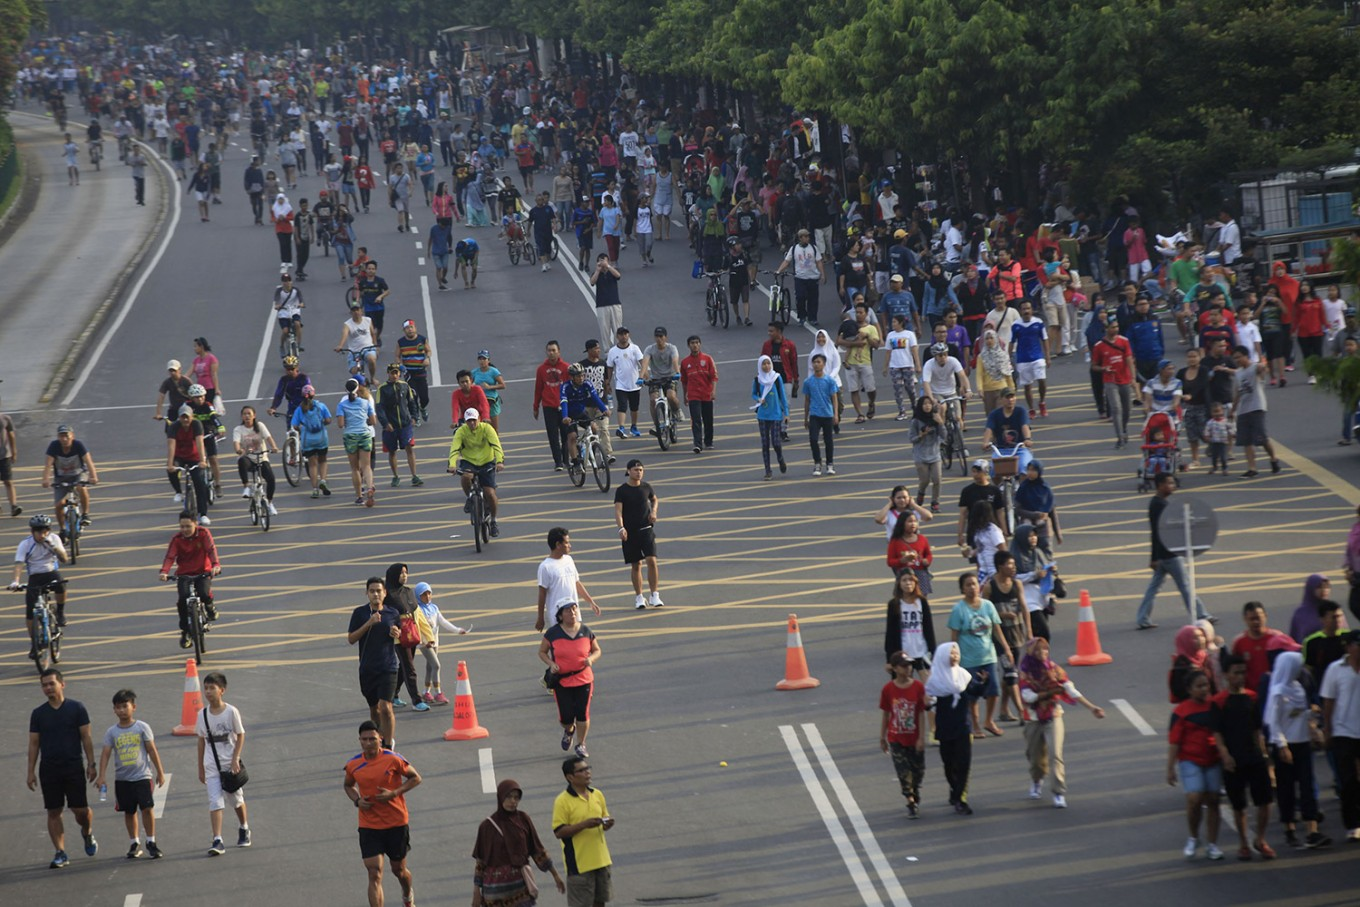 Commentary: Car Free Day chaotic, but provides free civic space